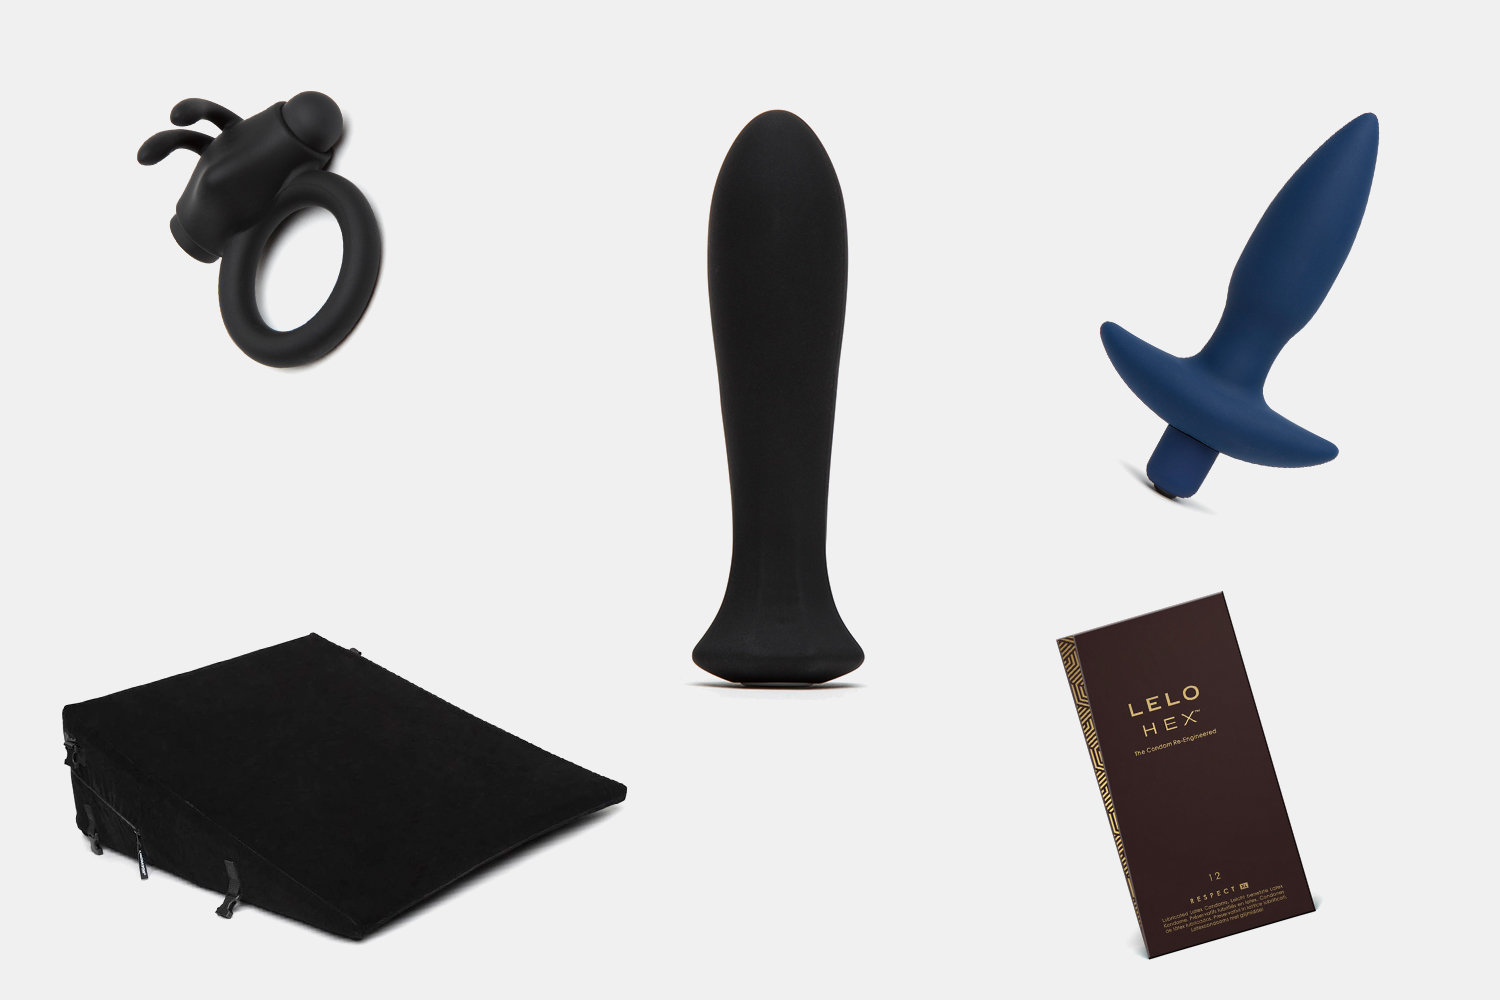 Deal: Save Up to 50% on Sex Toys at Lovehoney's 4th of July Sale